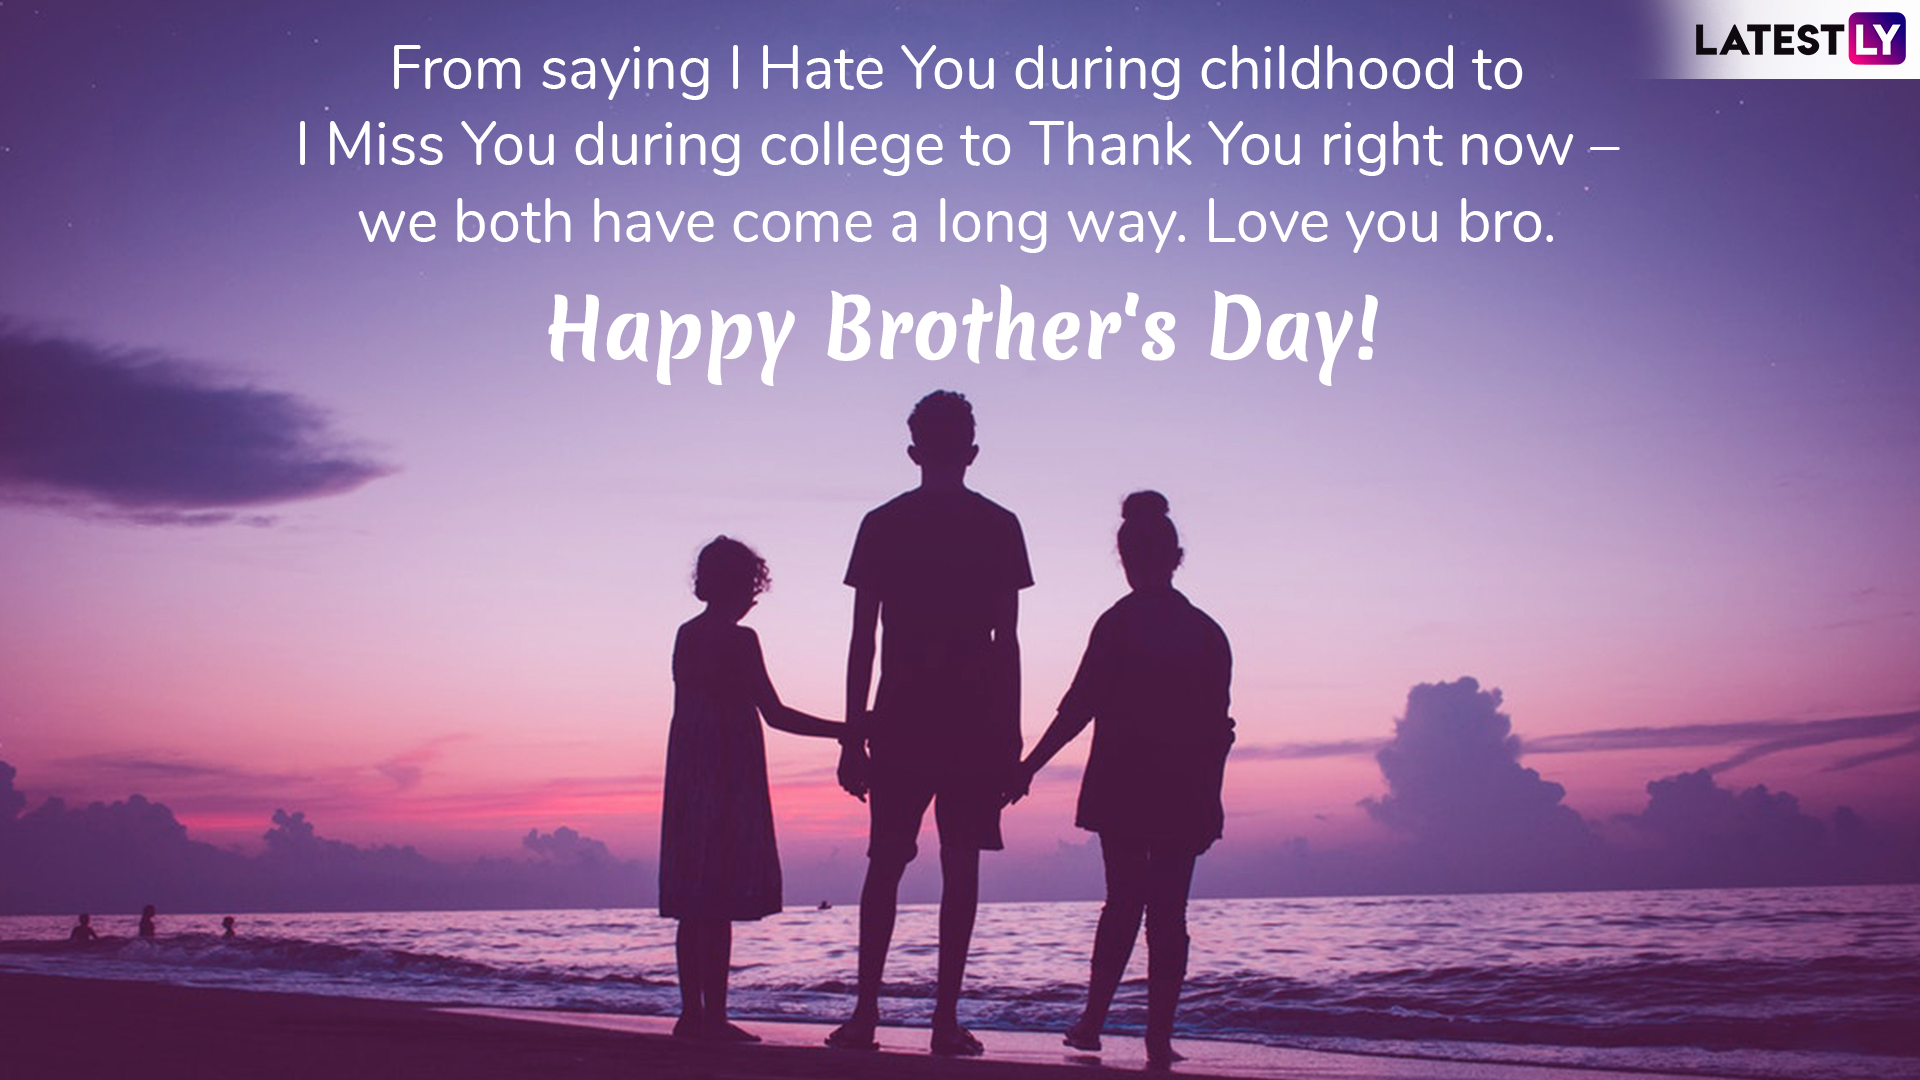 Happy National Brother's Day 2019 Greetings: WhatsApp Stickers